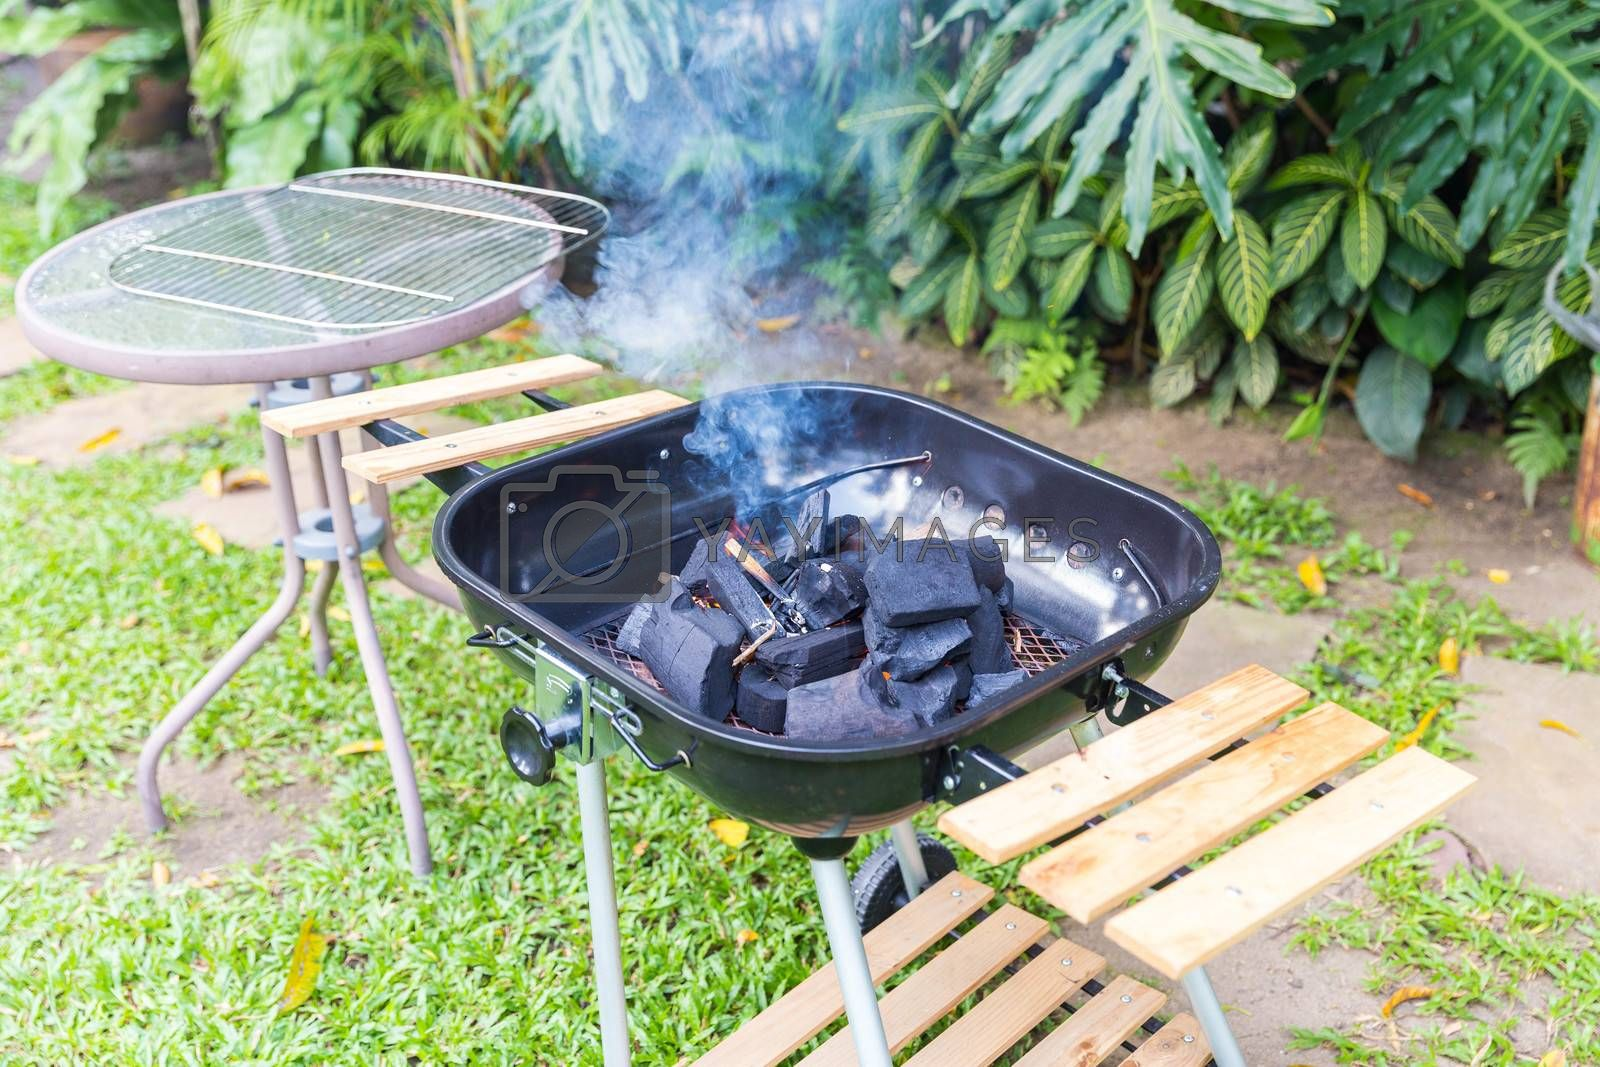 Fire coal in barbecue grill ready for cook in an outdoor backyard